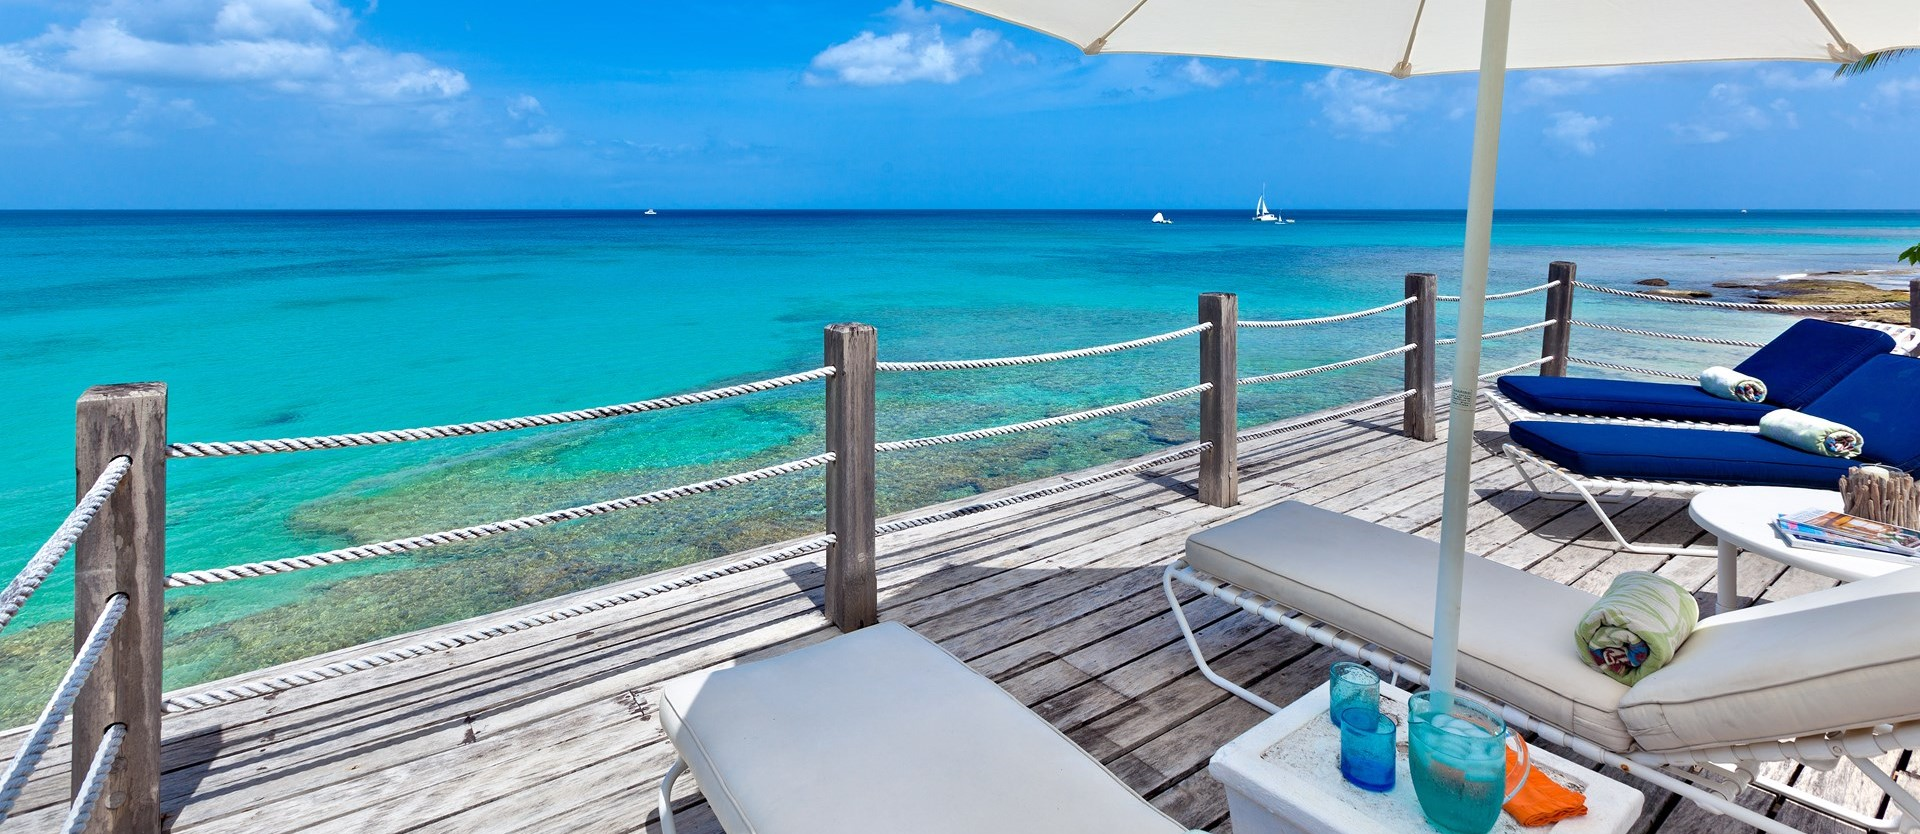 easy-reach-villa-barbados-seaside-terrac